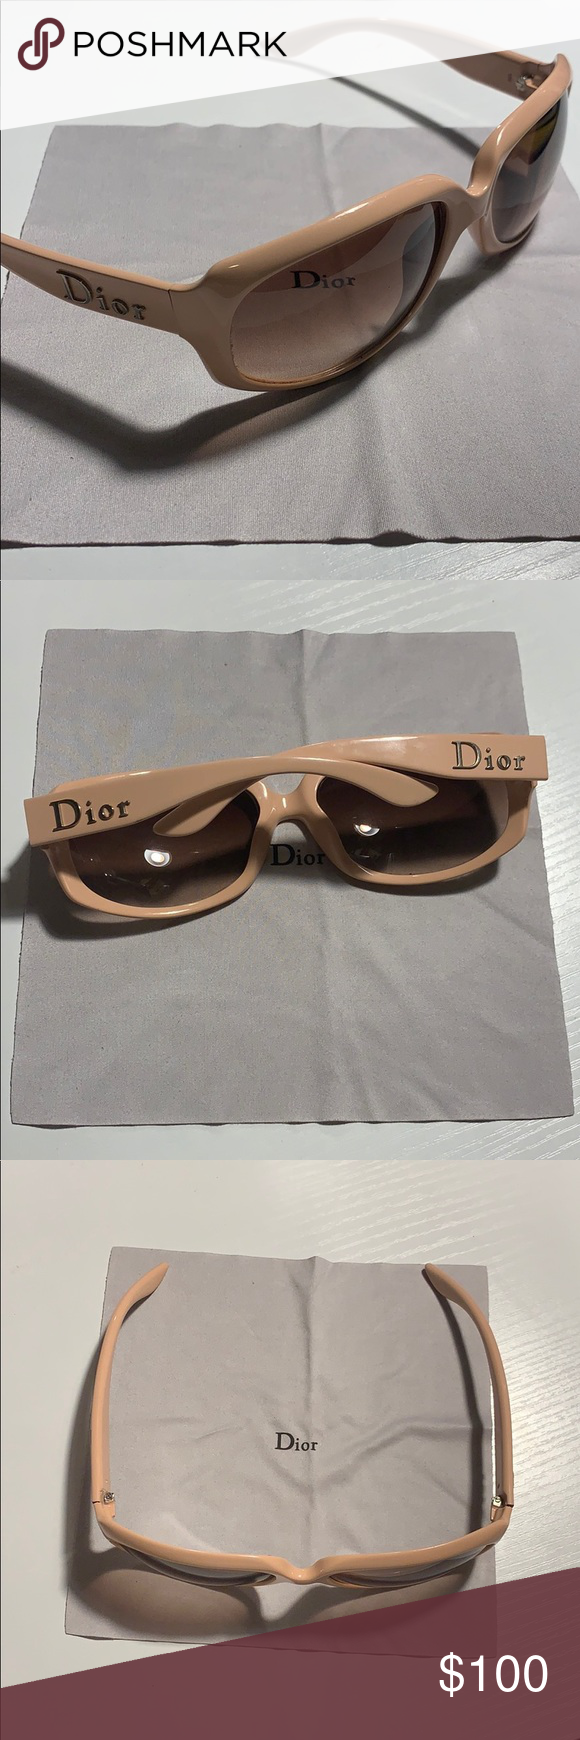 ea195f0b1e36 Spotted while shopping on Poshmark  🕶AUTHENTIC DIOR Glossy 2 Sunnies🕶!   poshmark  fashion  shopping  style  Dior  Accessories